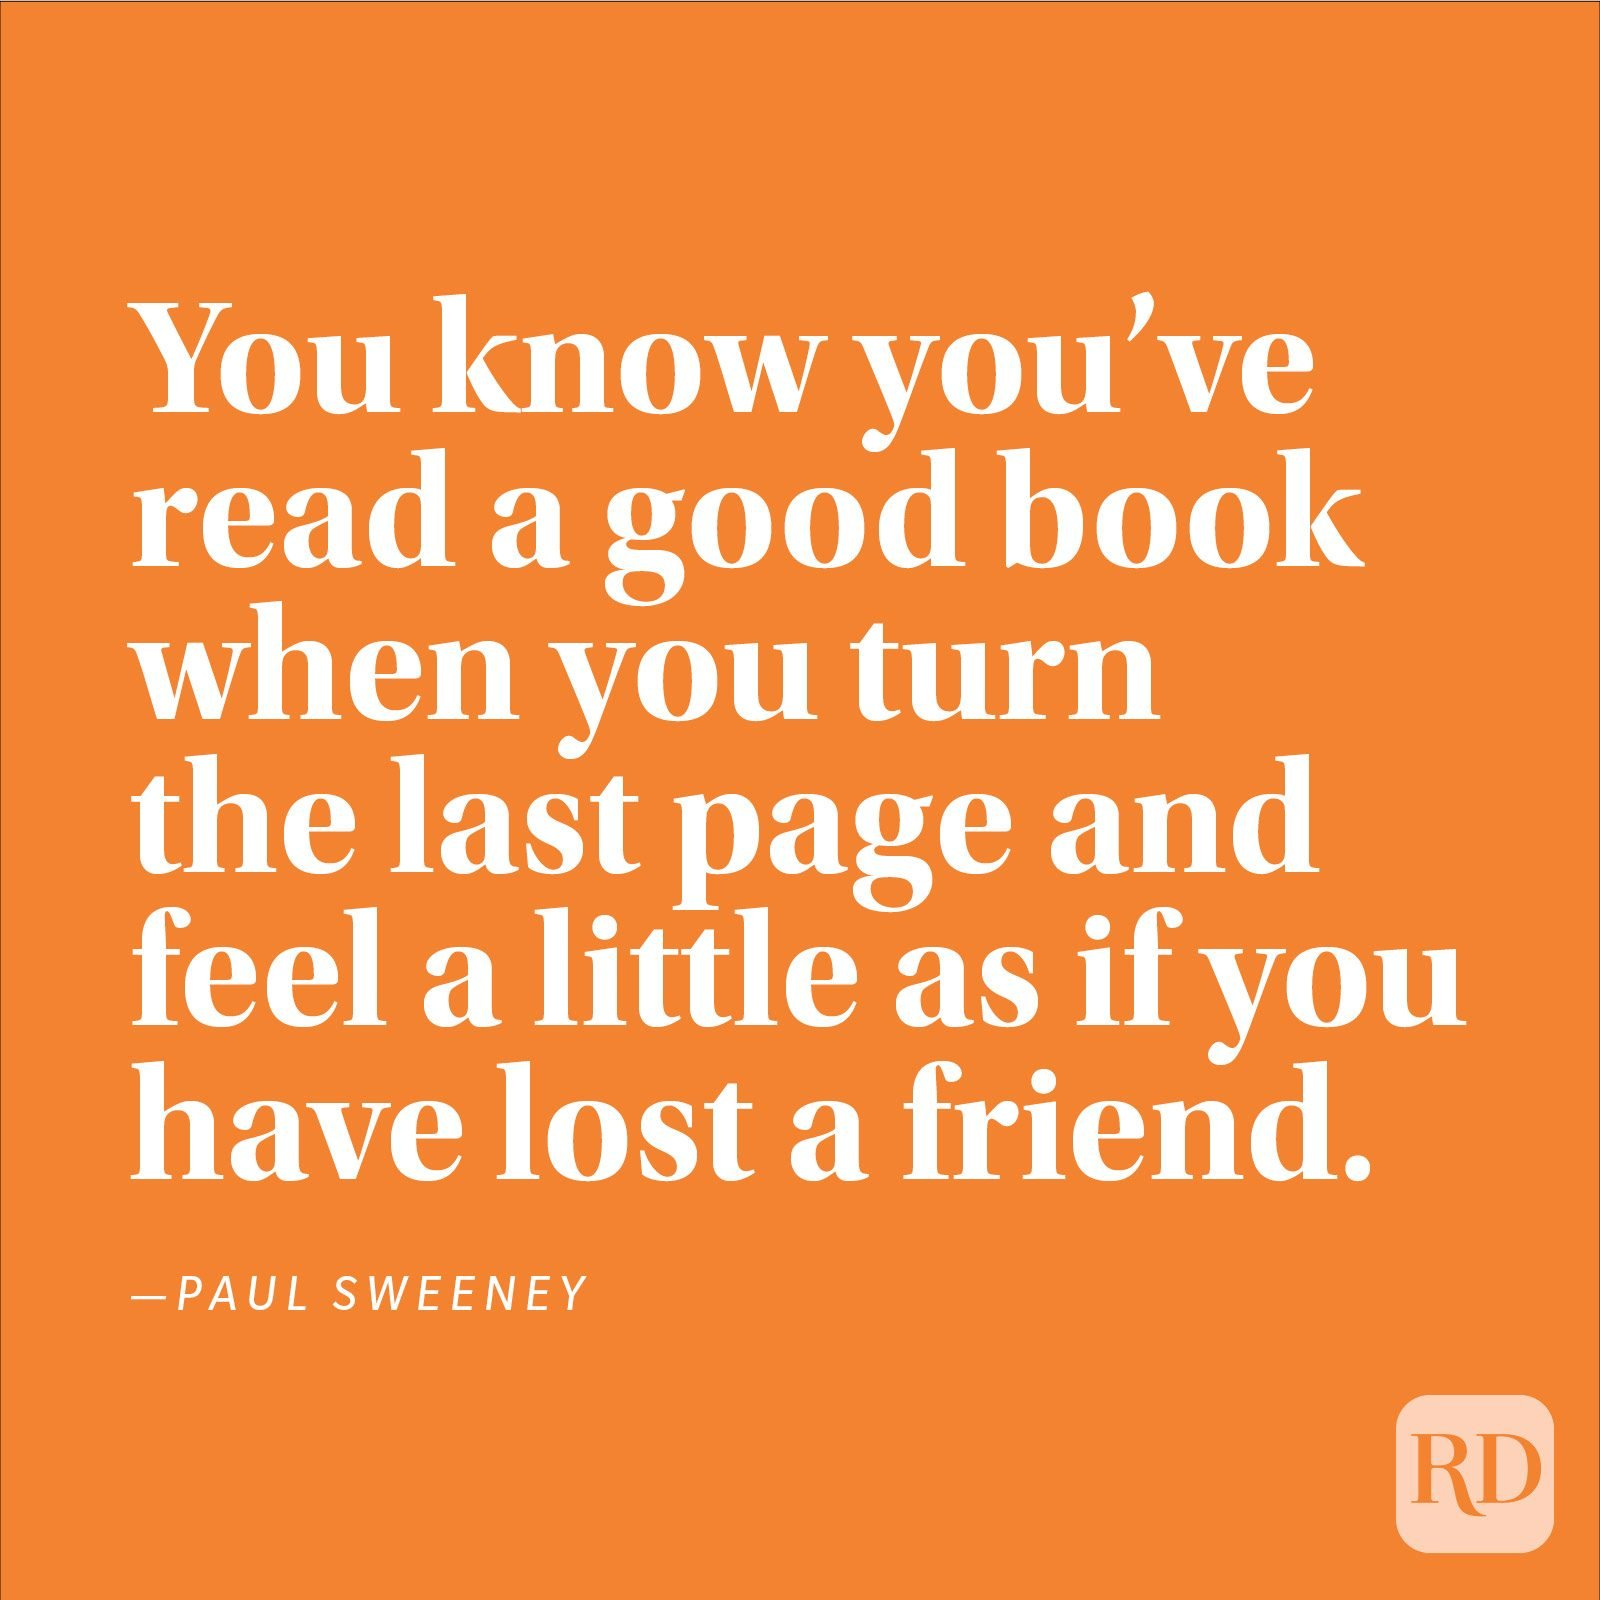 """You know you've read a good book when you turn the last page and feel a little as if you have lost a friend."" —Paul Sweeney"